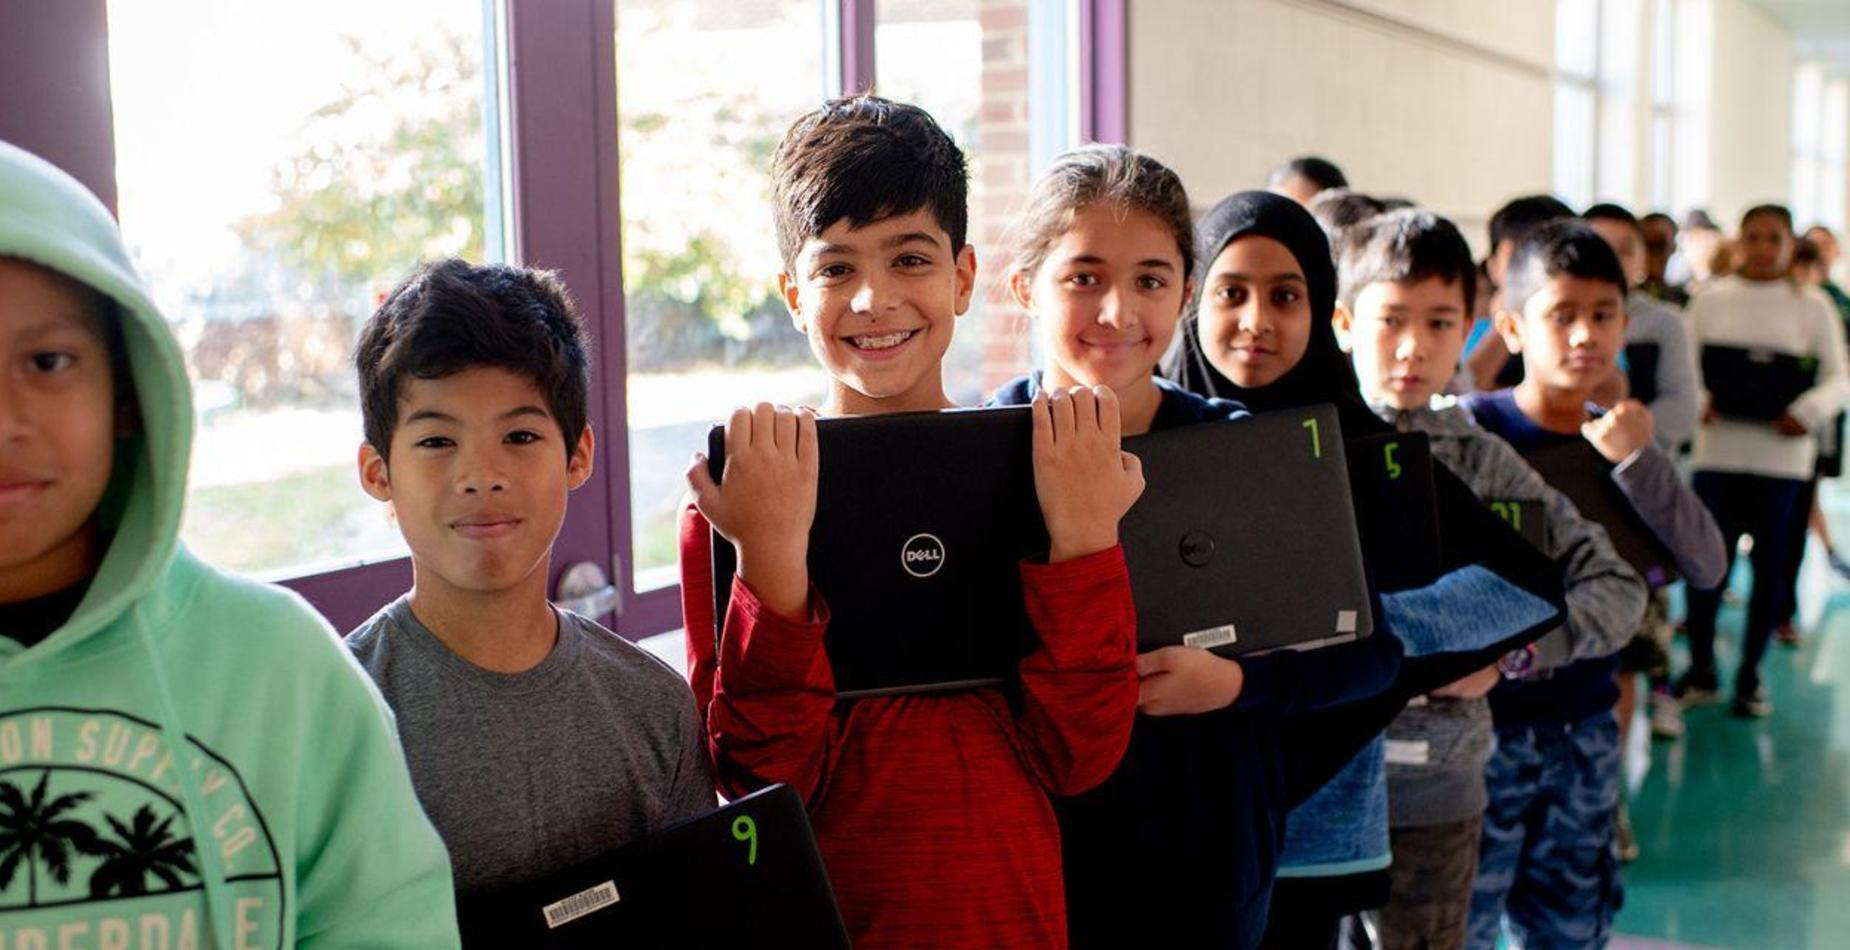 photo of kids with computers